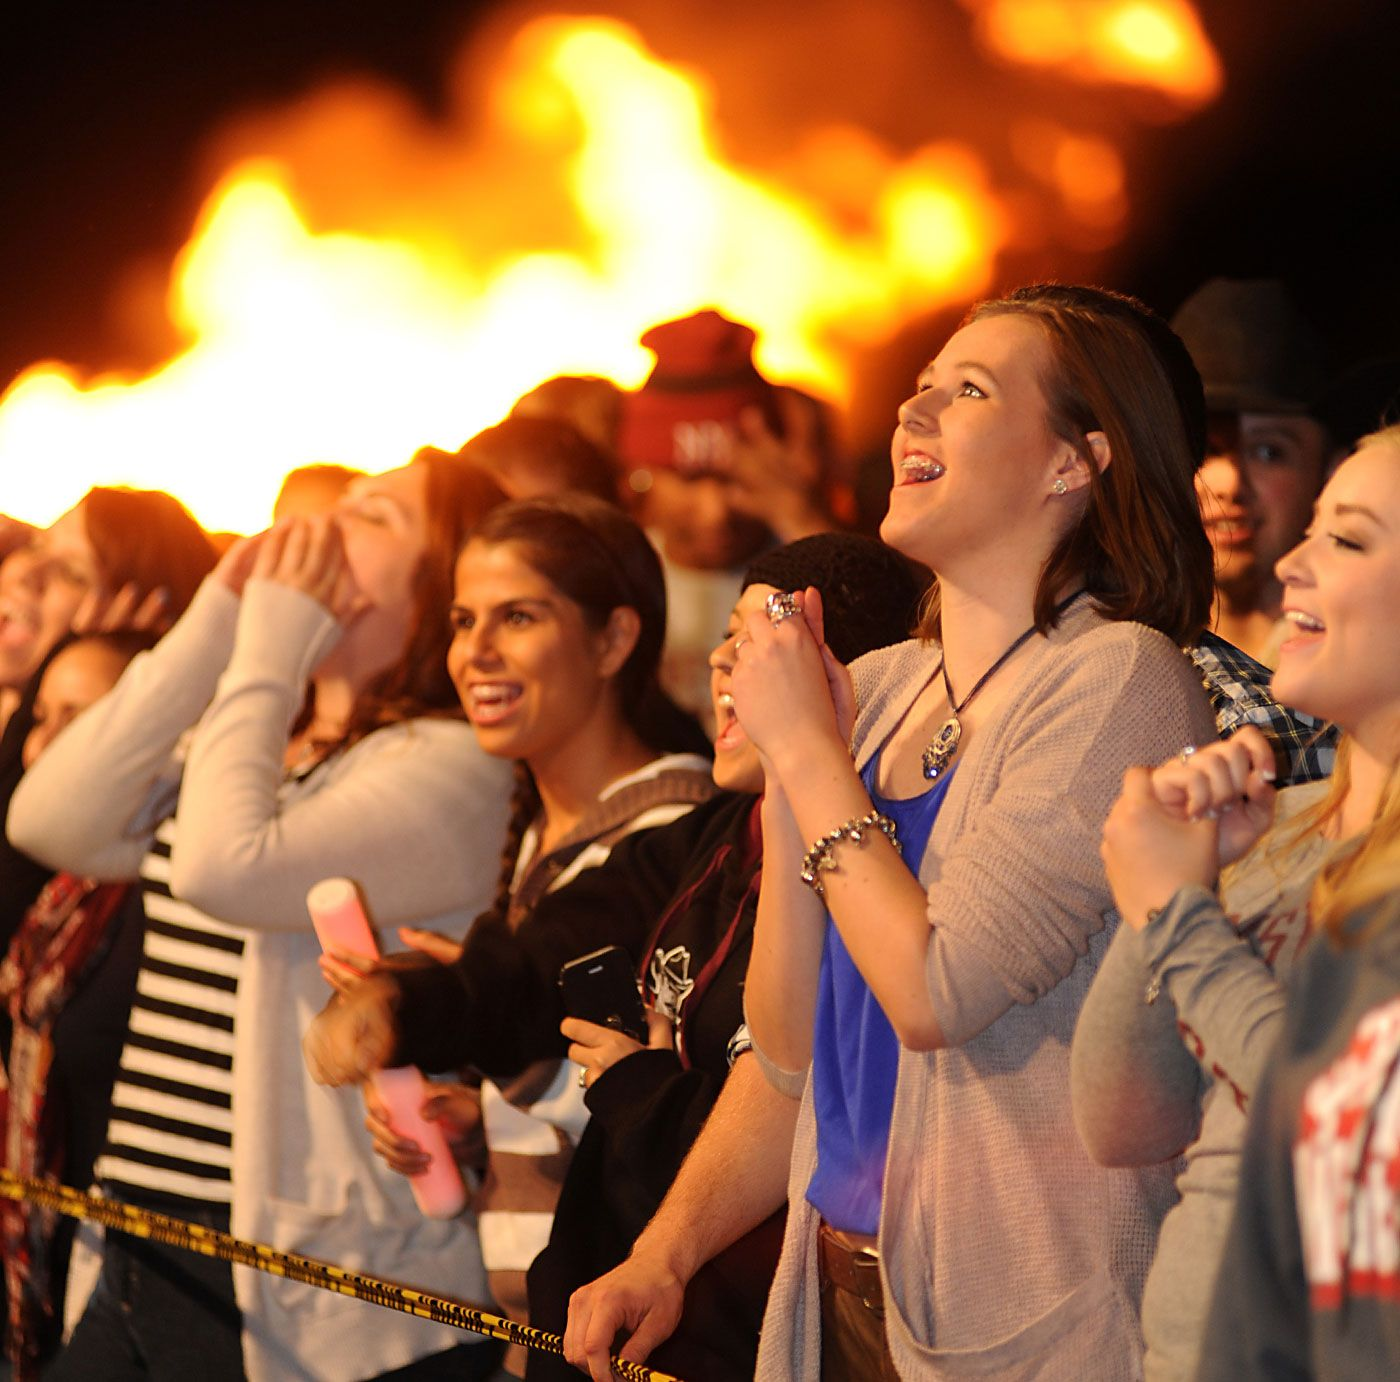 New Mexico State University Invites Alumni And Friends To Join Homecoming 2018 Celebrations October 4 New Mexico State University Alumni Association Homecoming